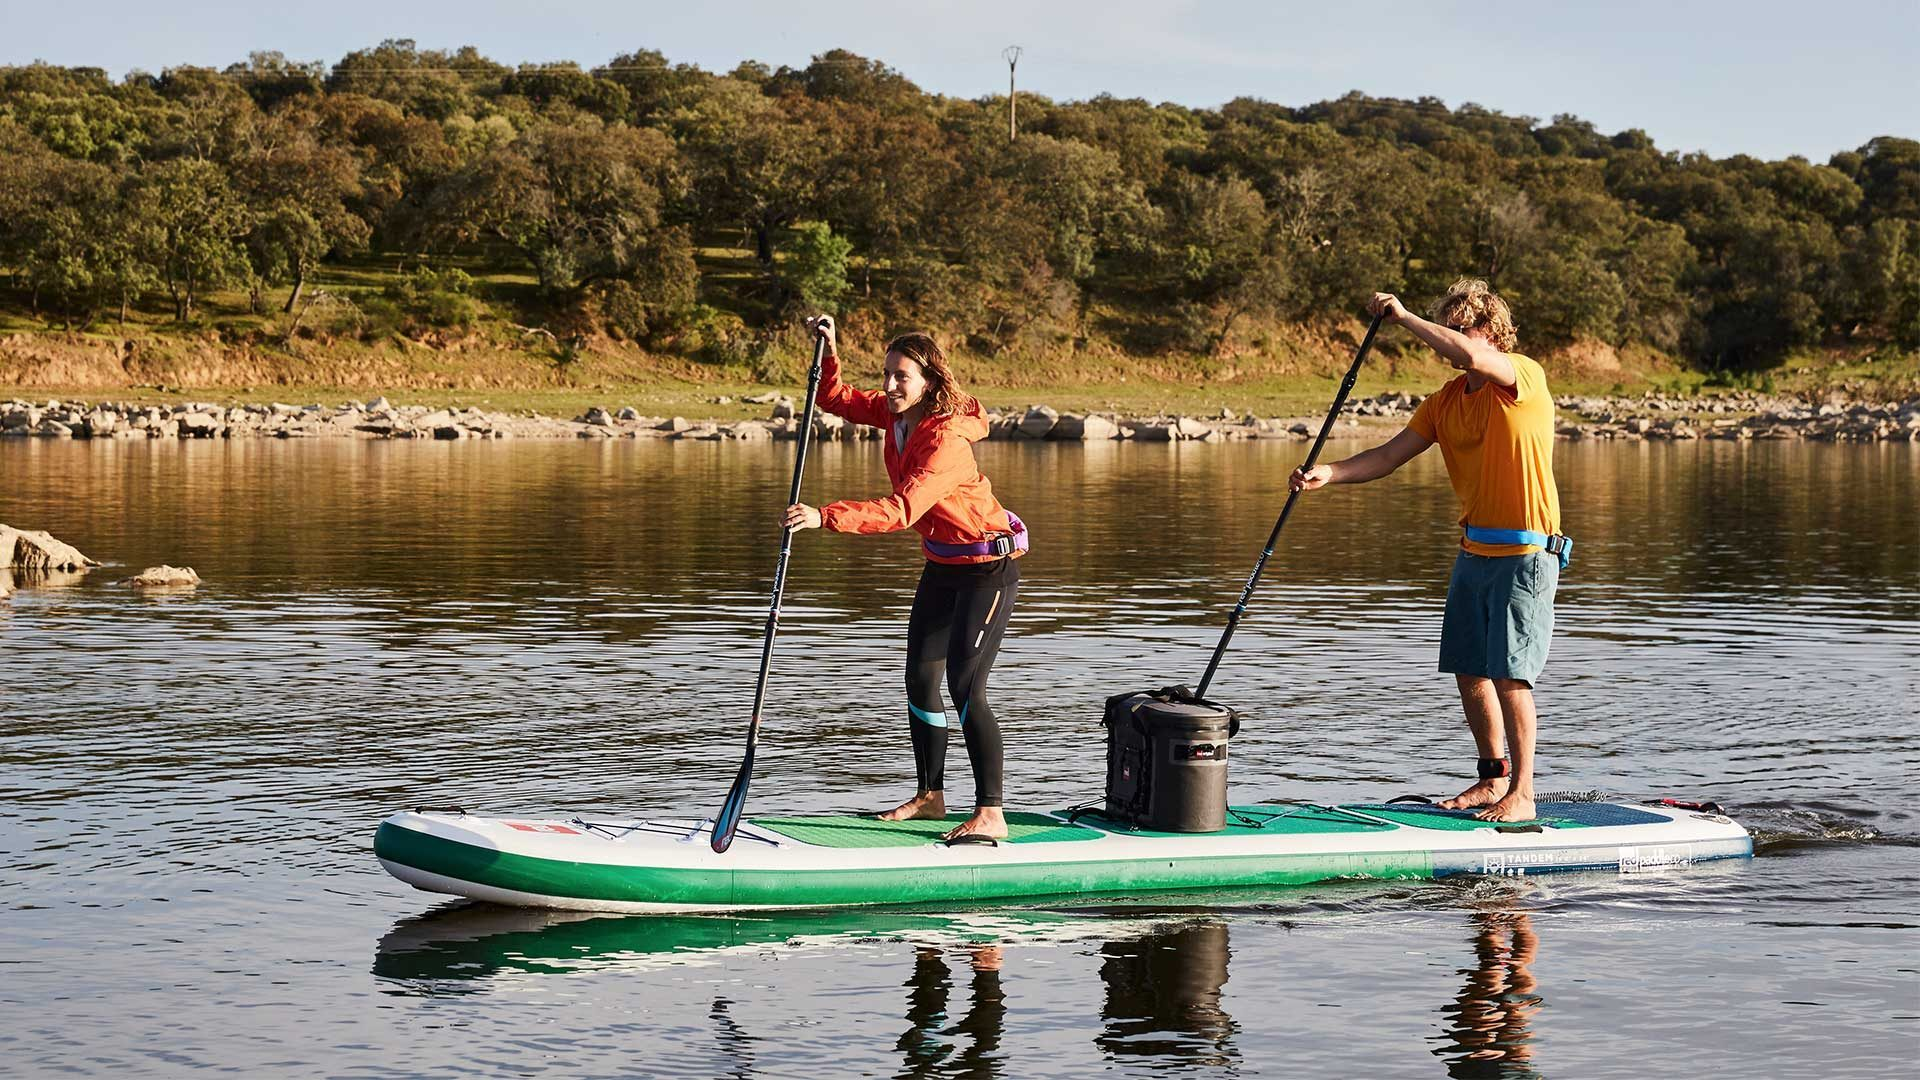 2 persoons stand up paddle board